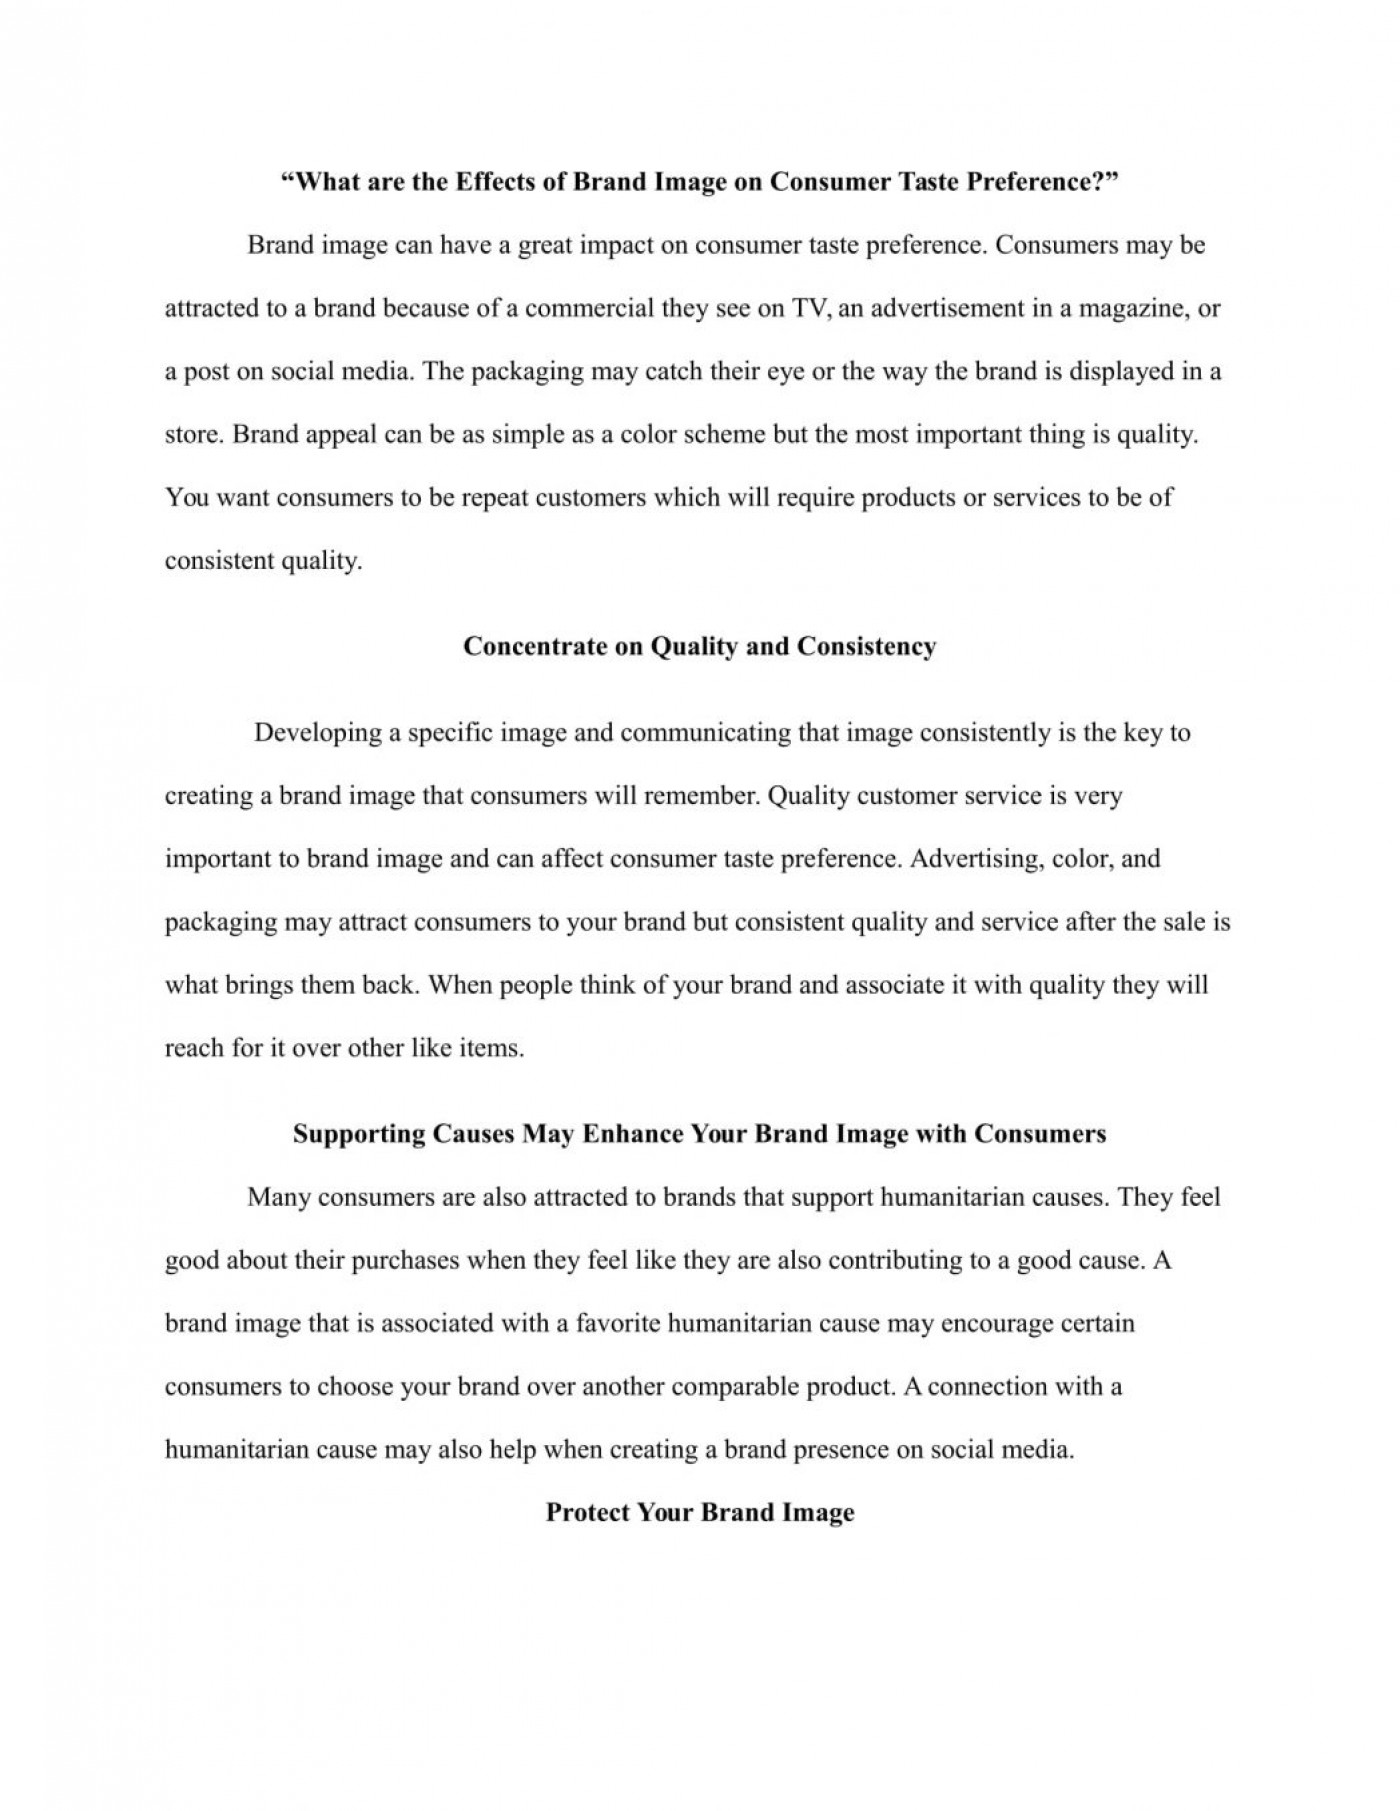 006 Essay File Expository Sample Jpg Volunteer Service Exploratory Topicss Sam Introduction Free Research Thesis 1048x1356 Awful Topics About Technology For College Medicine 1400